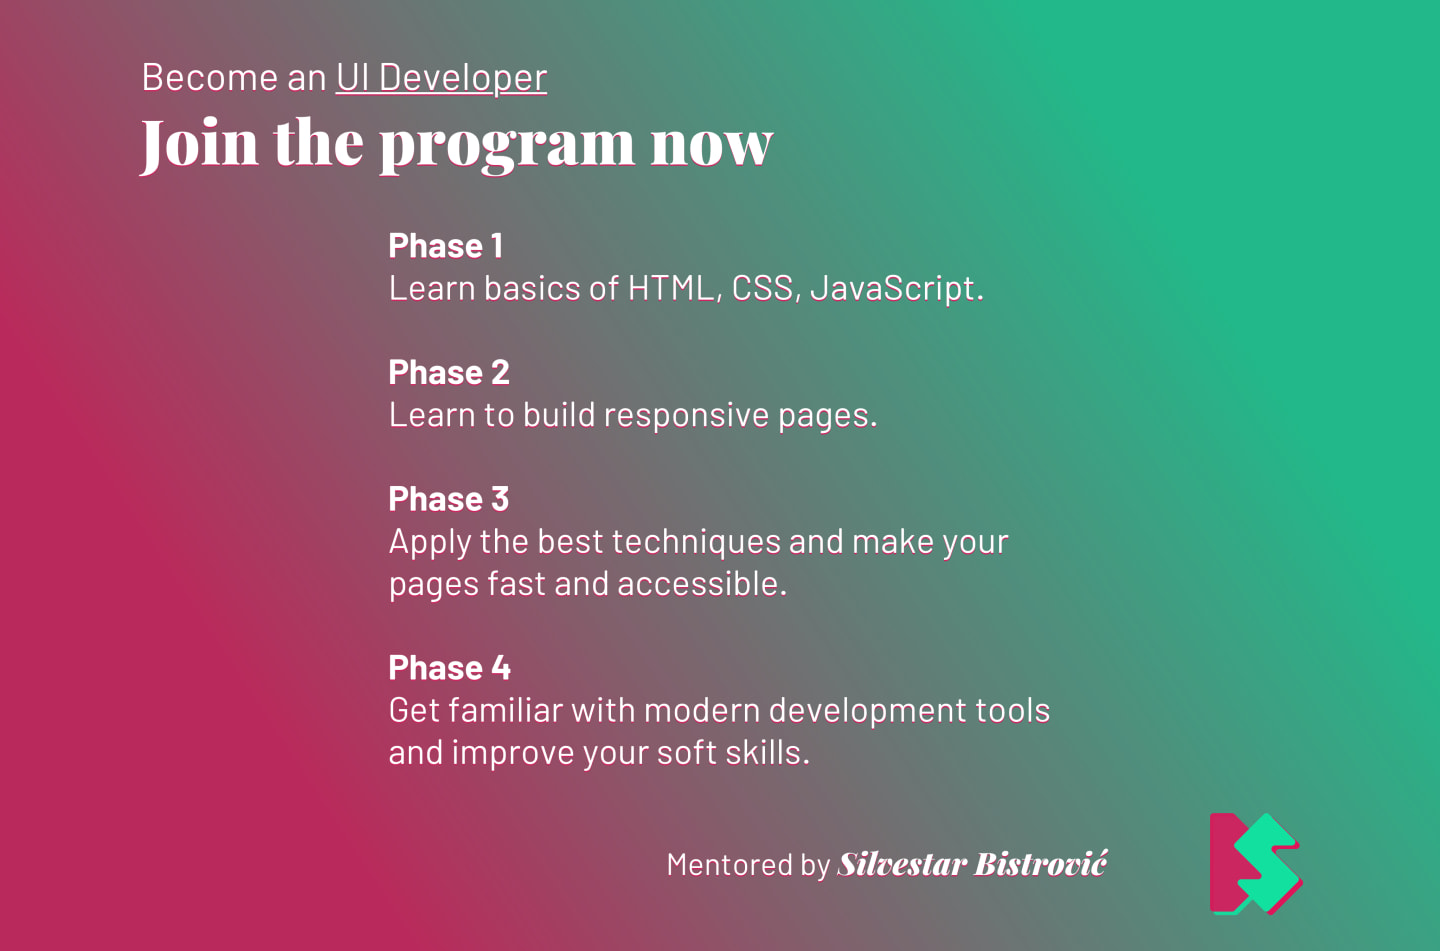 The UI mentoring program by phases.